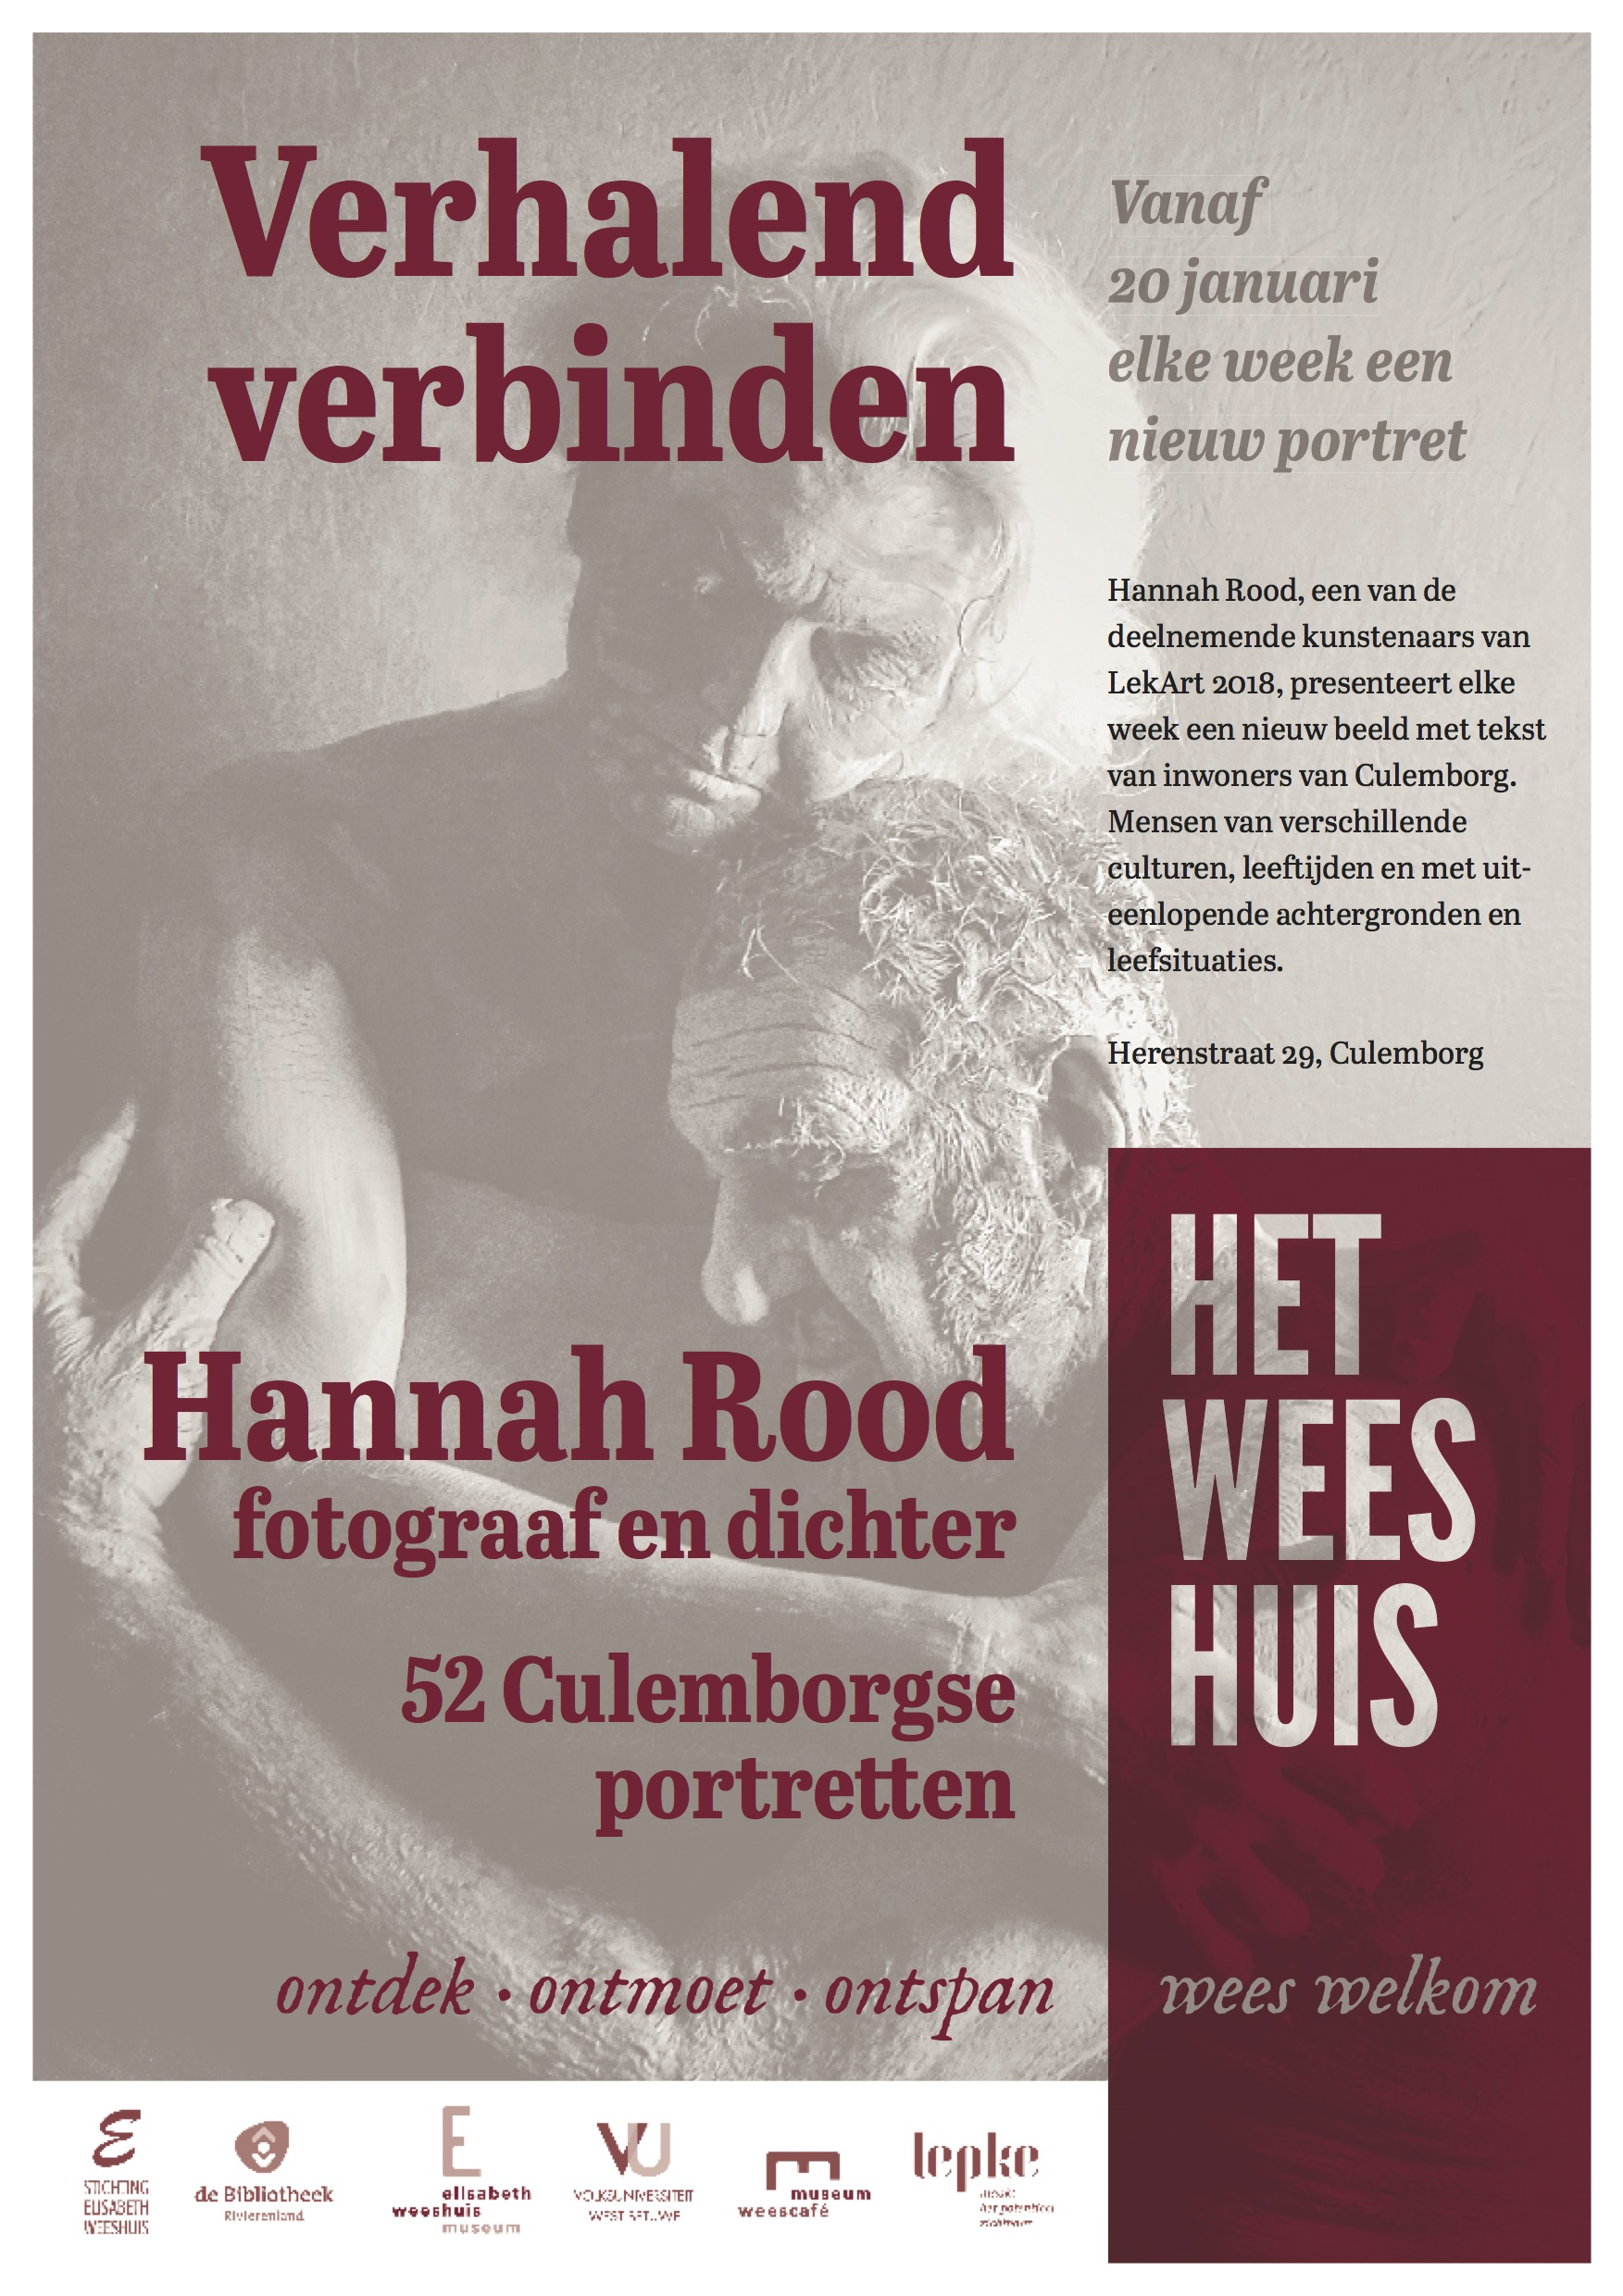 Hanna_Rood_affiche_def